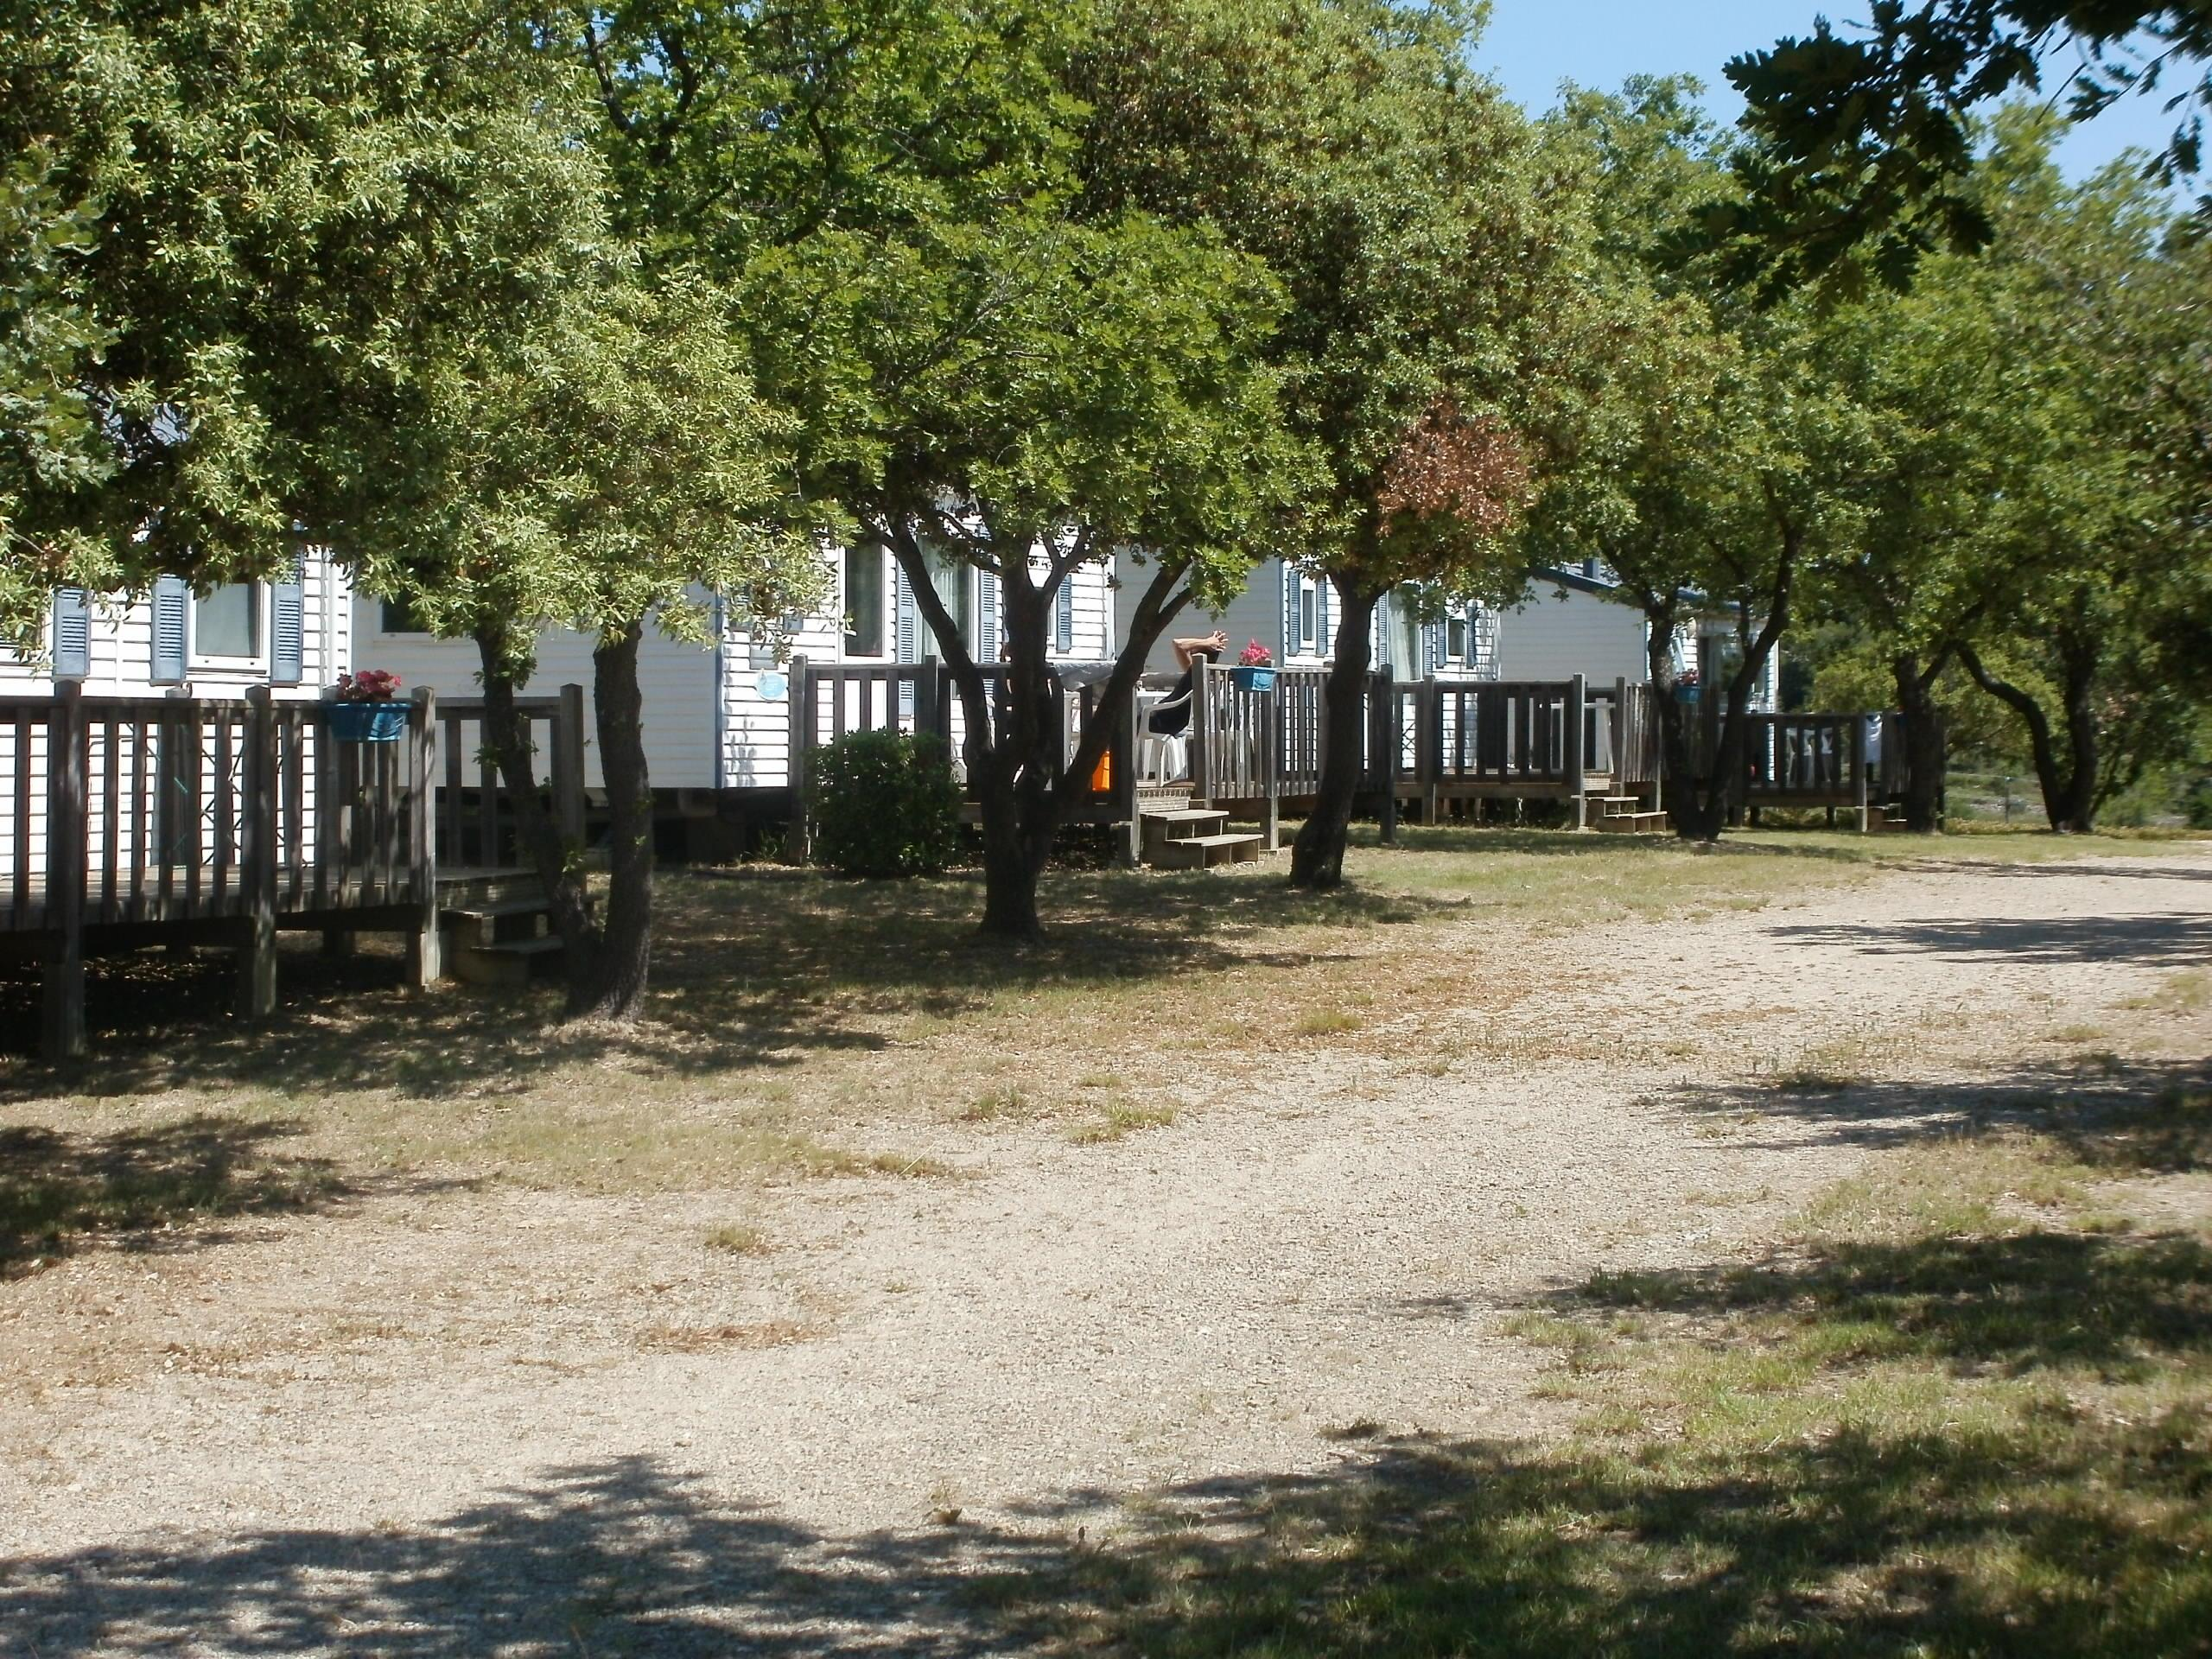 Establishment Camping Les Silhols - Lagorce